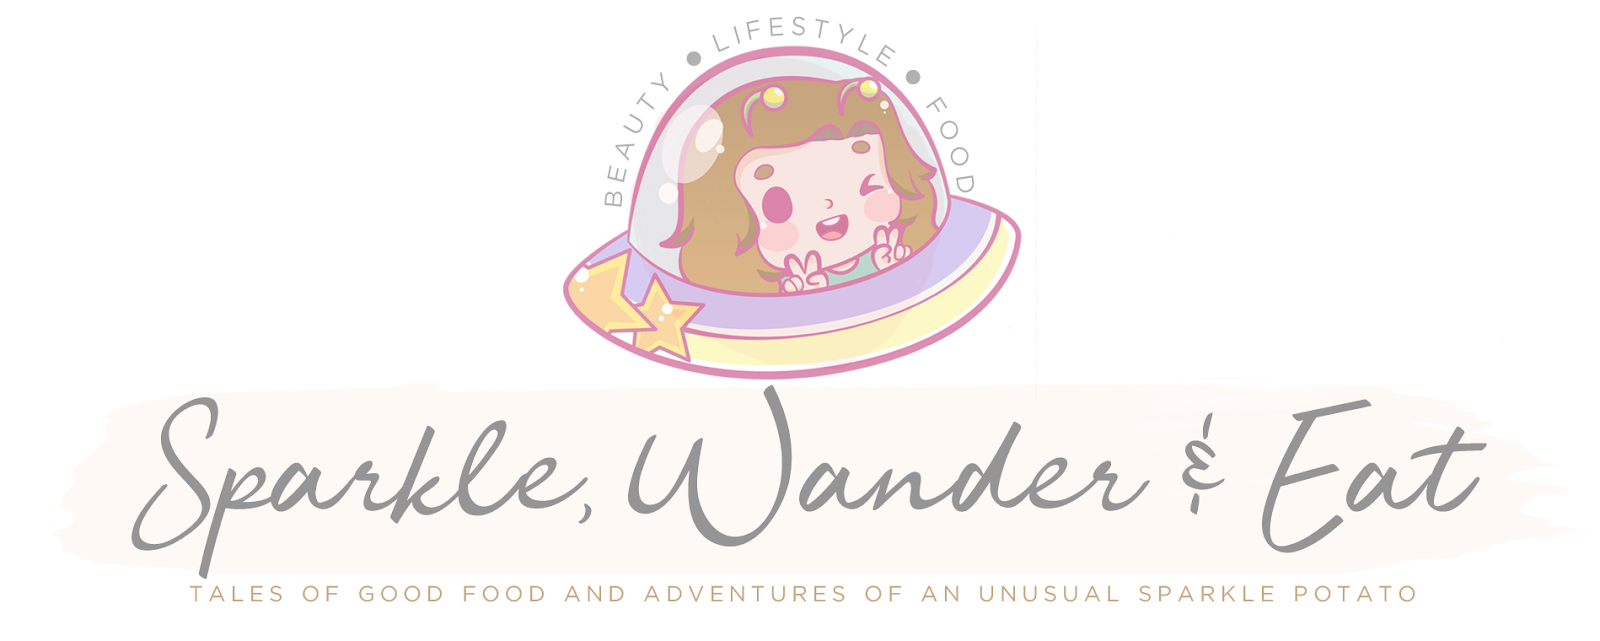 Sparkle, Wander and Eat